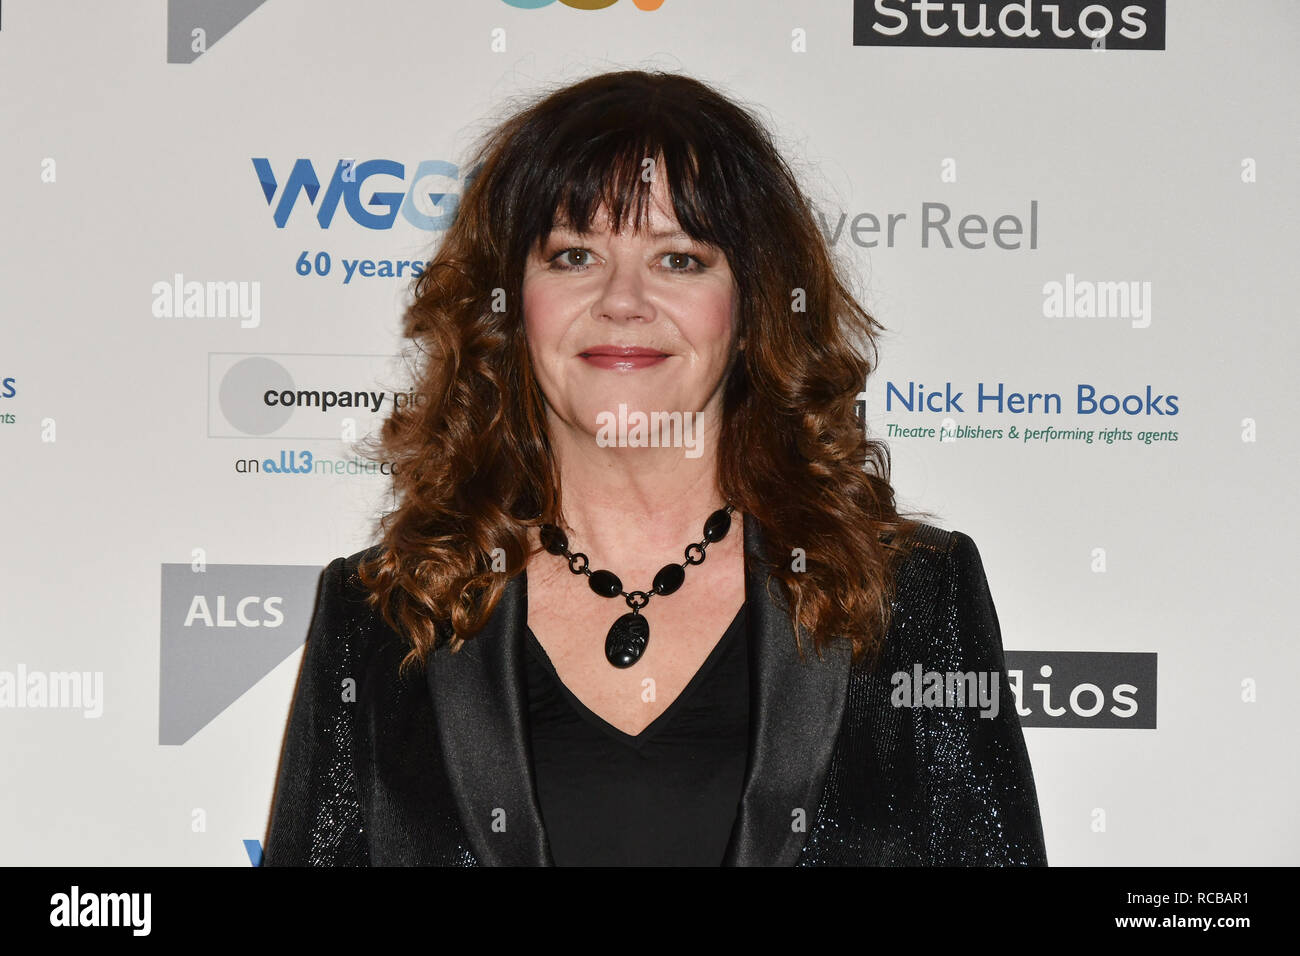 Josie Lawrence (born 1959)